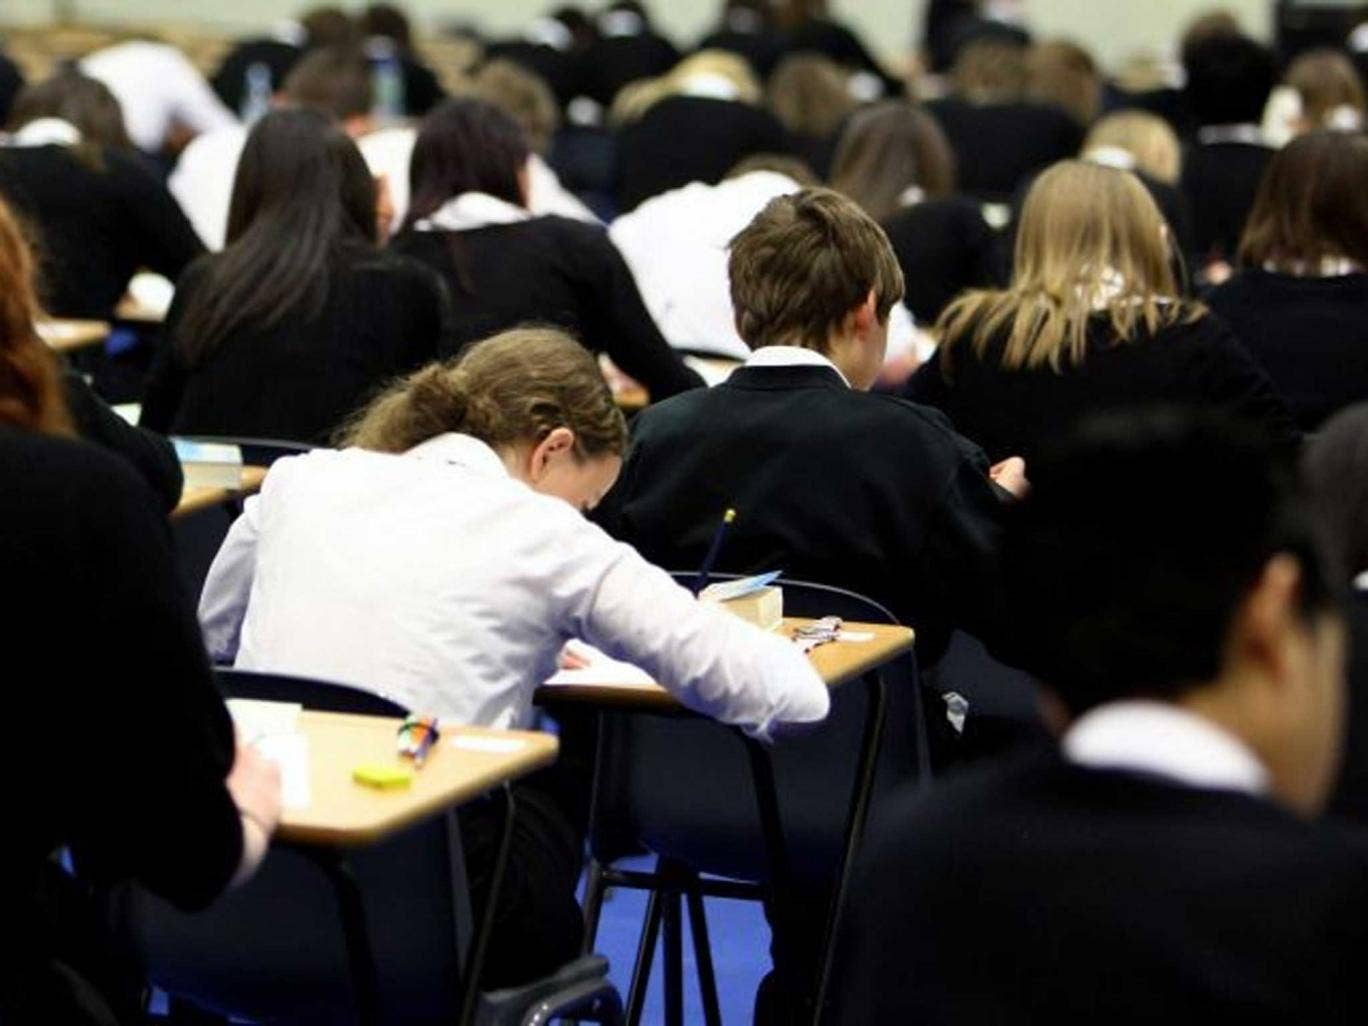 More than a third of teachers say they make pupils practice tests